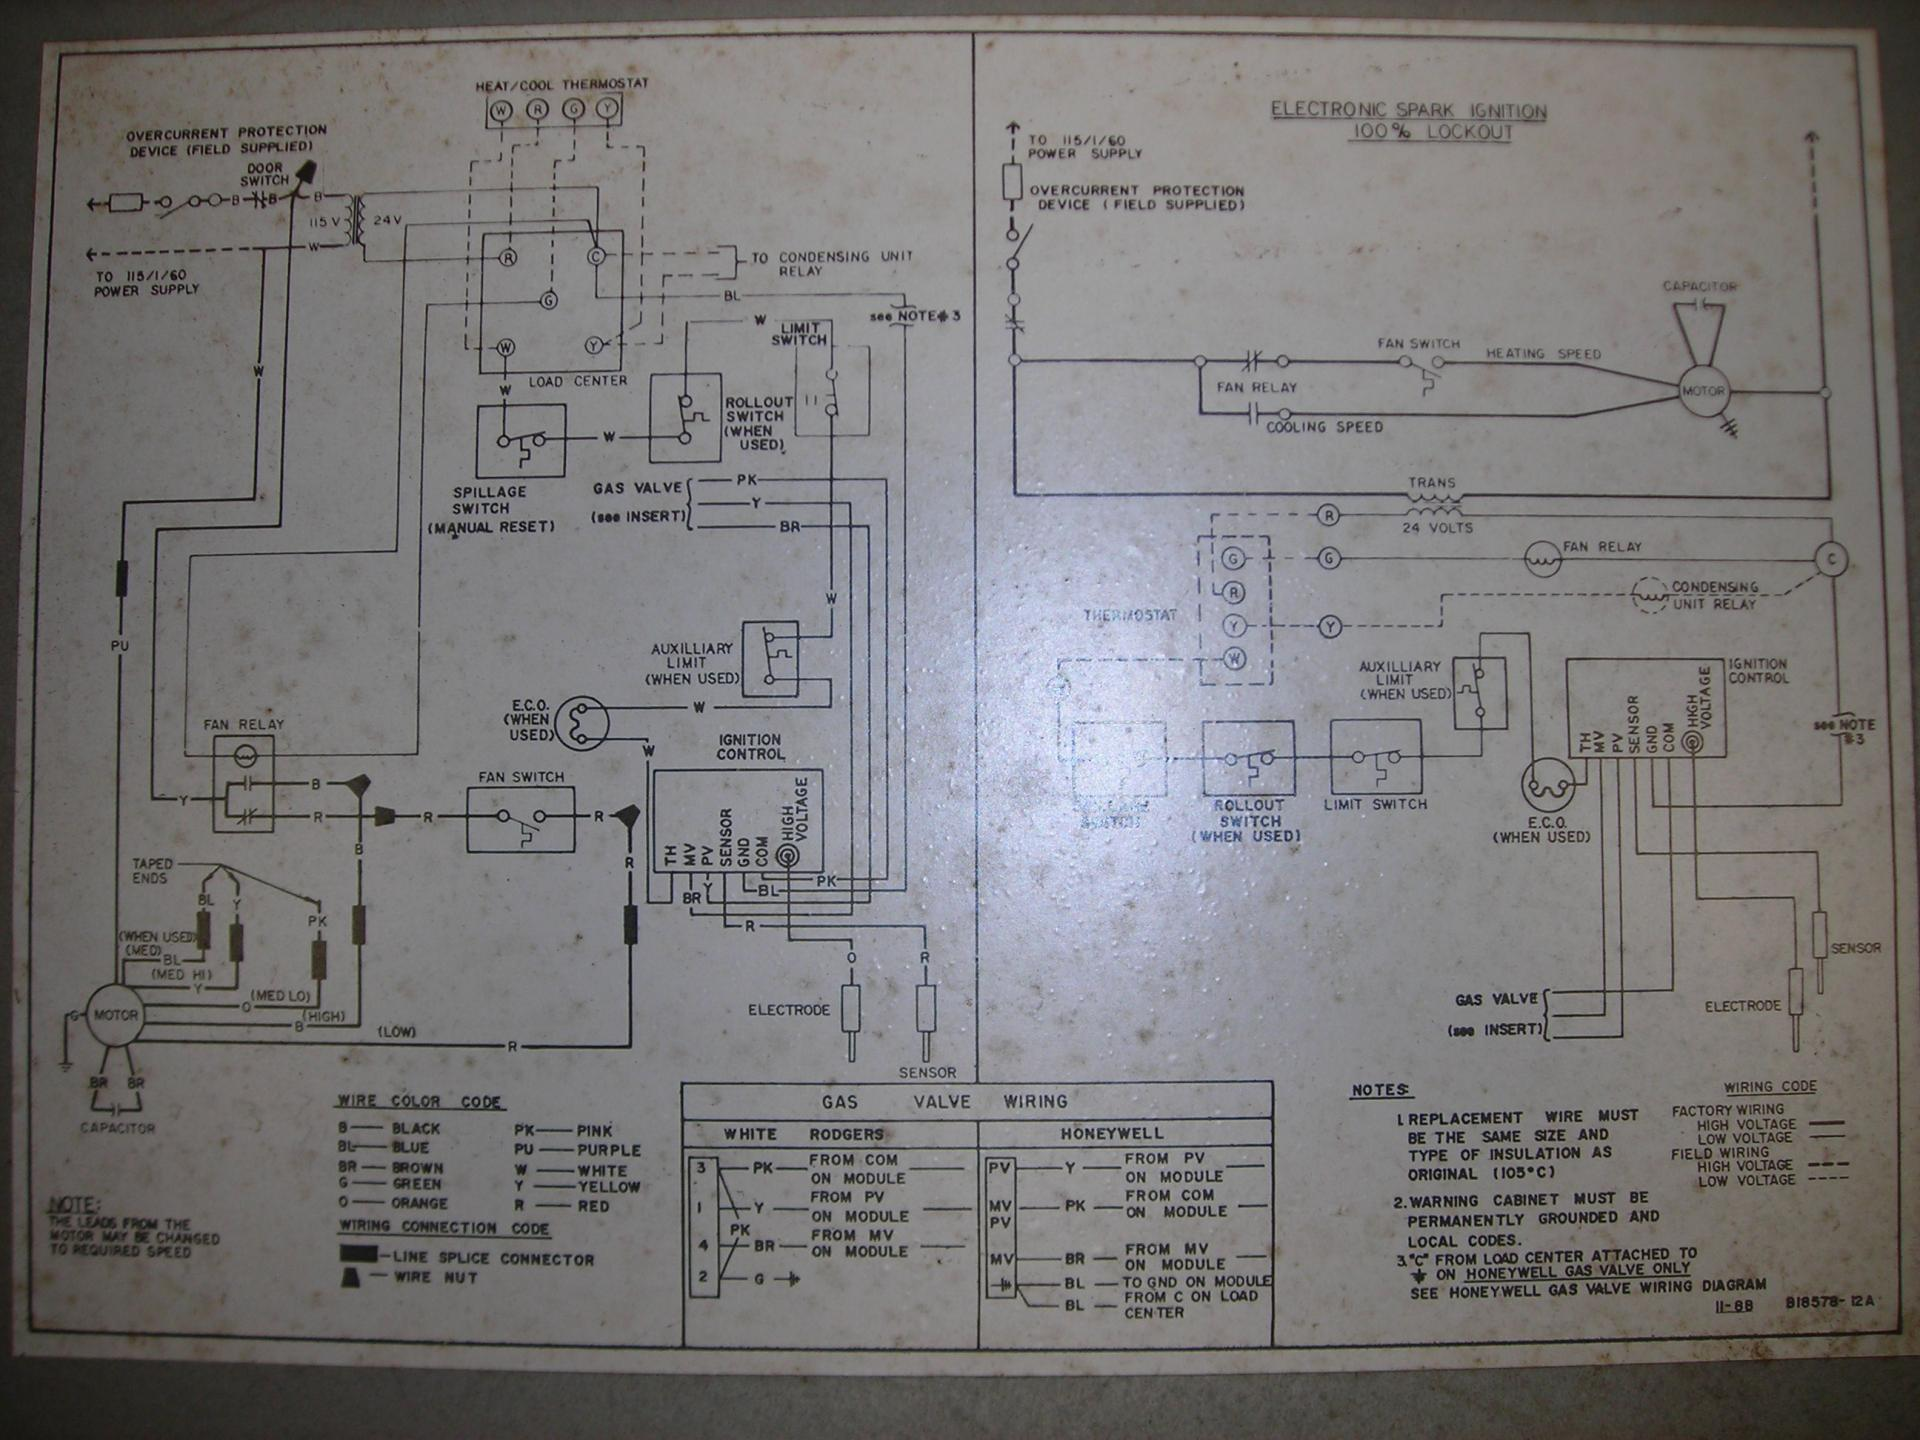 Thermostat Wiring Color Code Also Furnace Fan Center Wiring Diagram